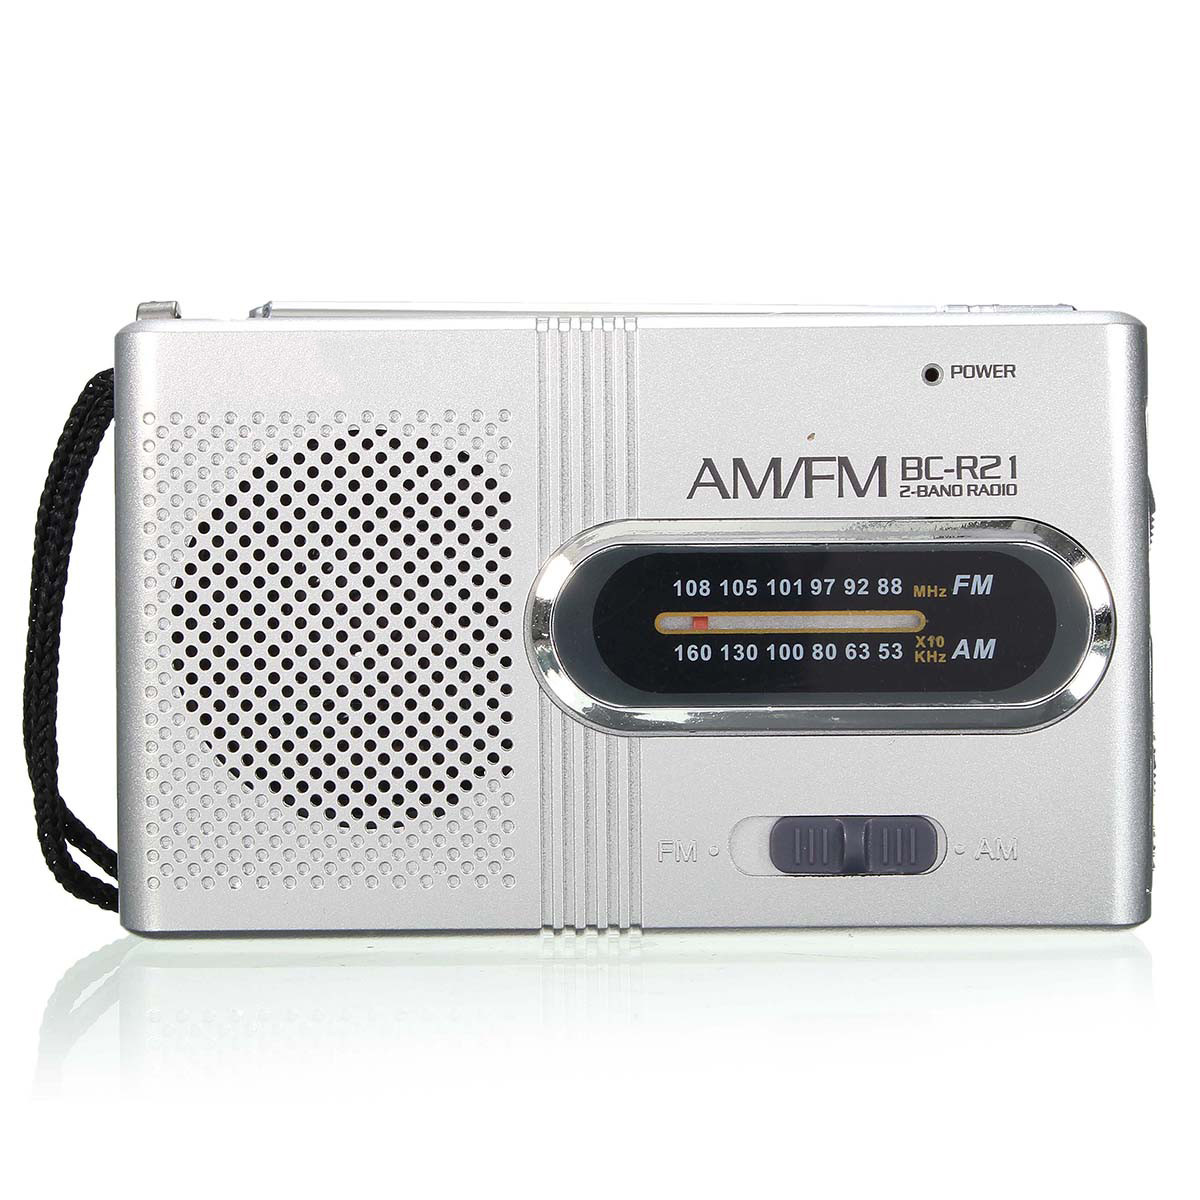 BC-R21 Portable Radio Receiver Mini Radio AM-FM Receiver Outdoor Speaker World Radio Receiver